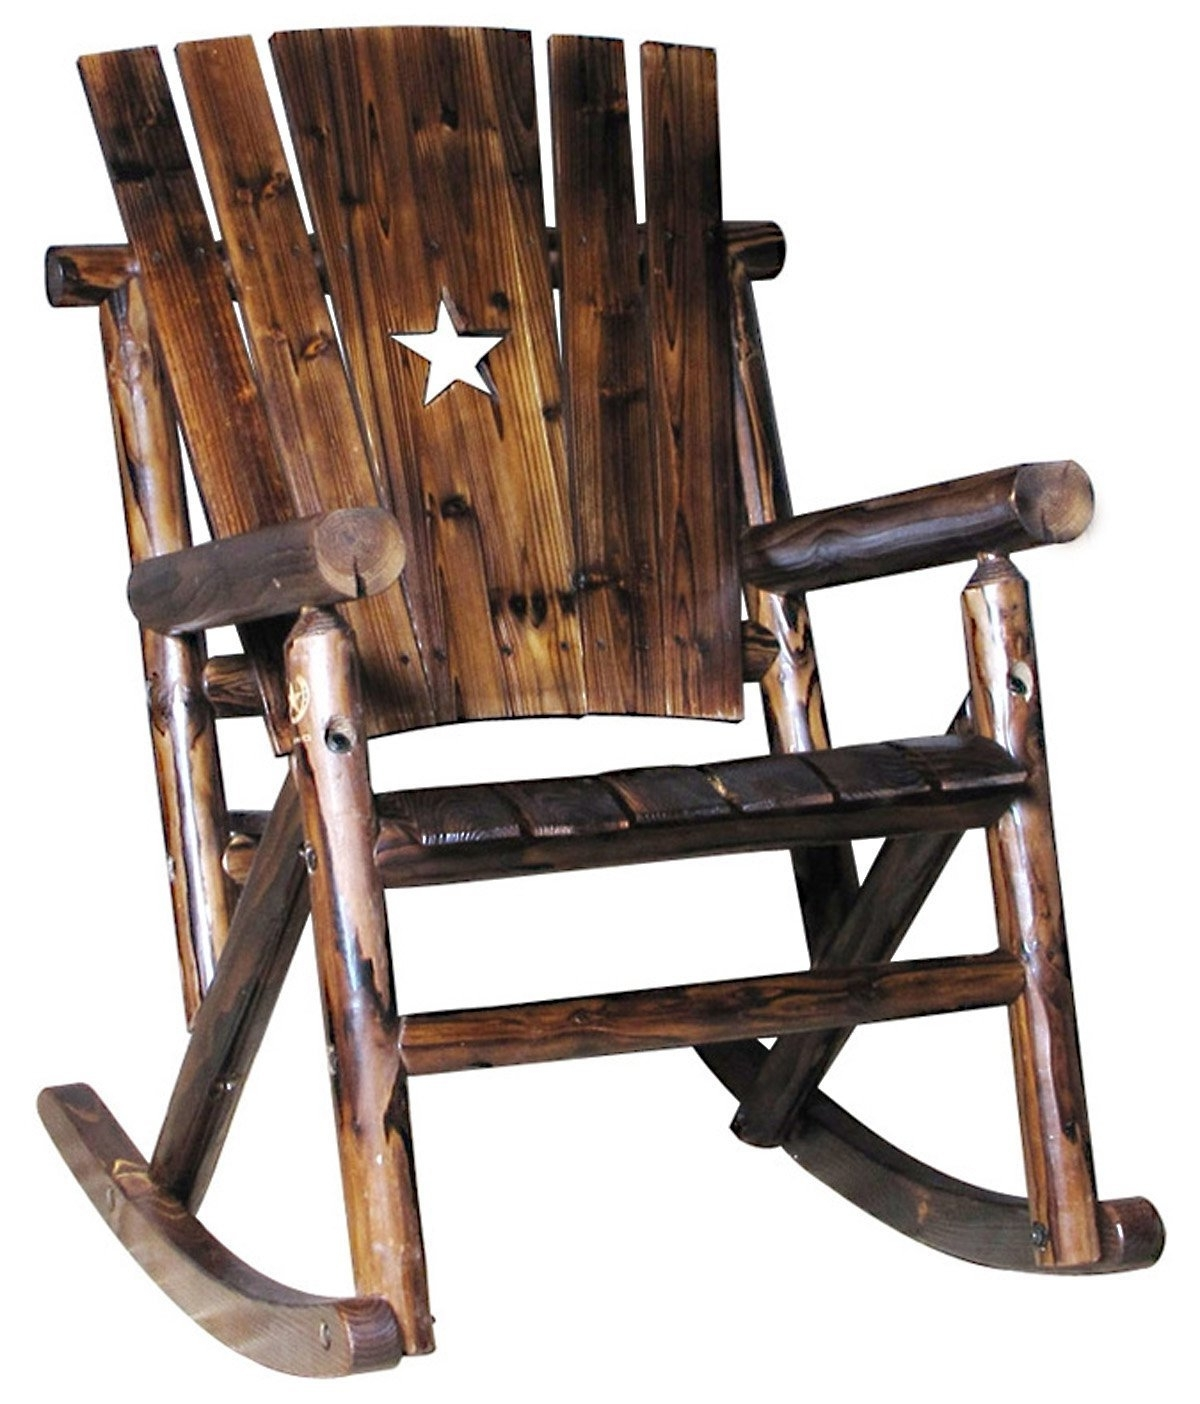 3 Best Rustic Rocking Chairs Available In The Market - Nursery Gliderz within Newest Rocking Chairs At Kroger